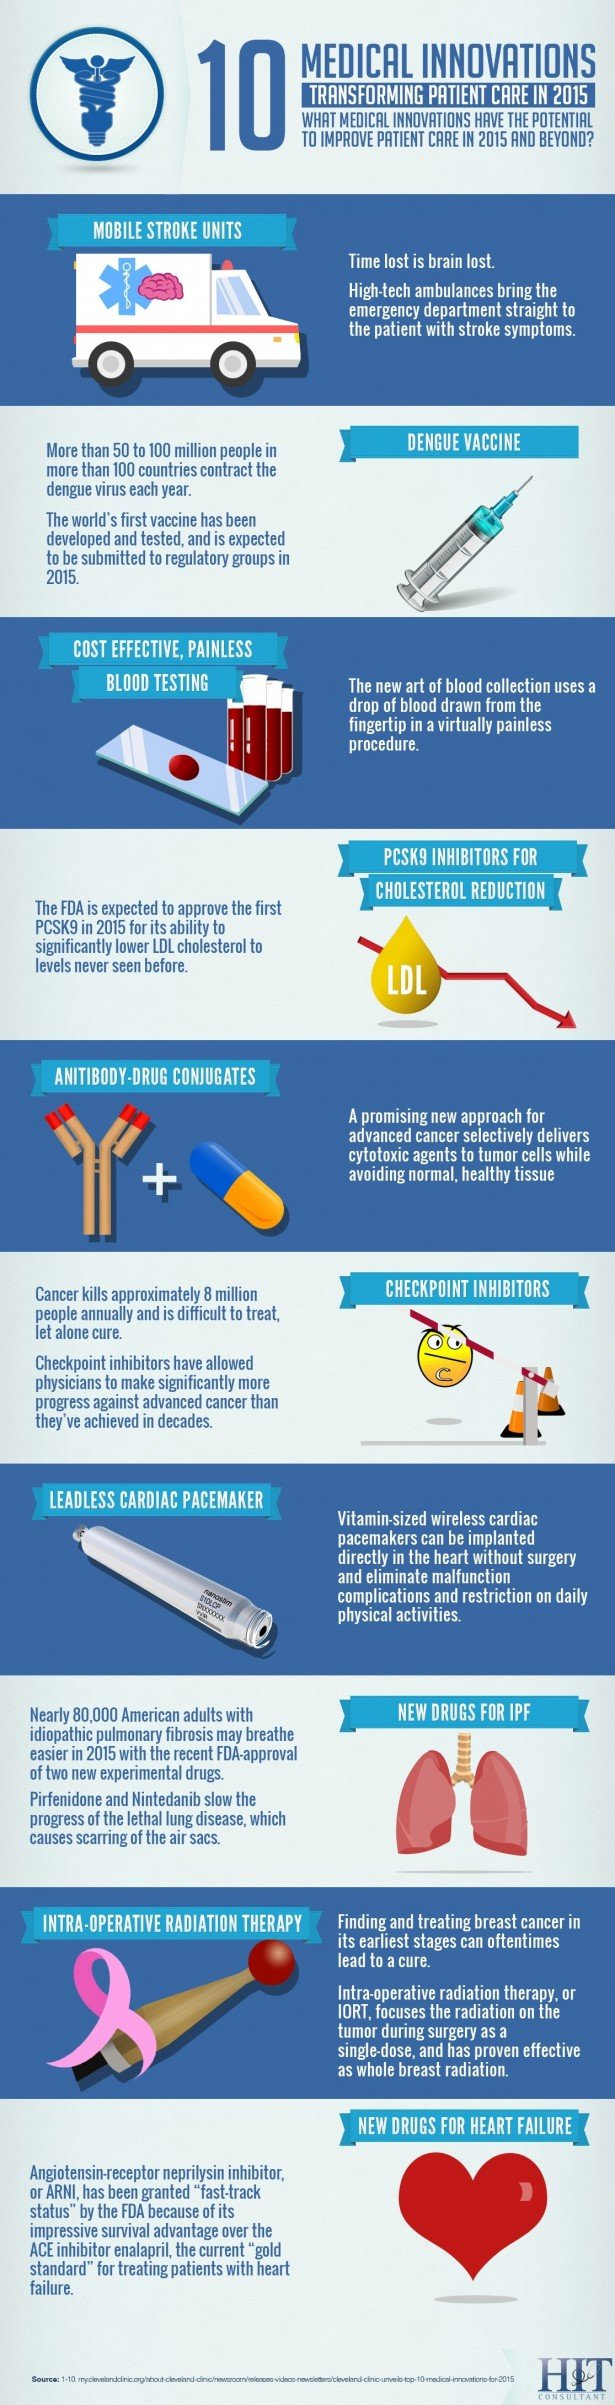 Ten Medical Innovations transforming patient care in 2015 #Infographic